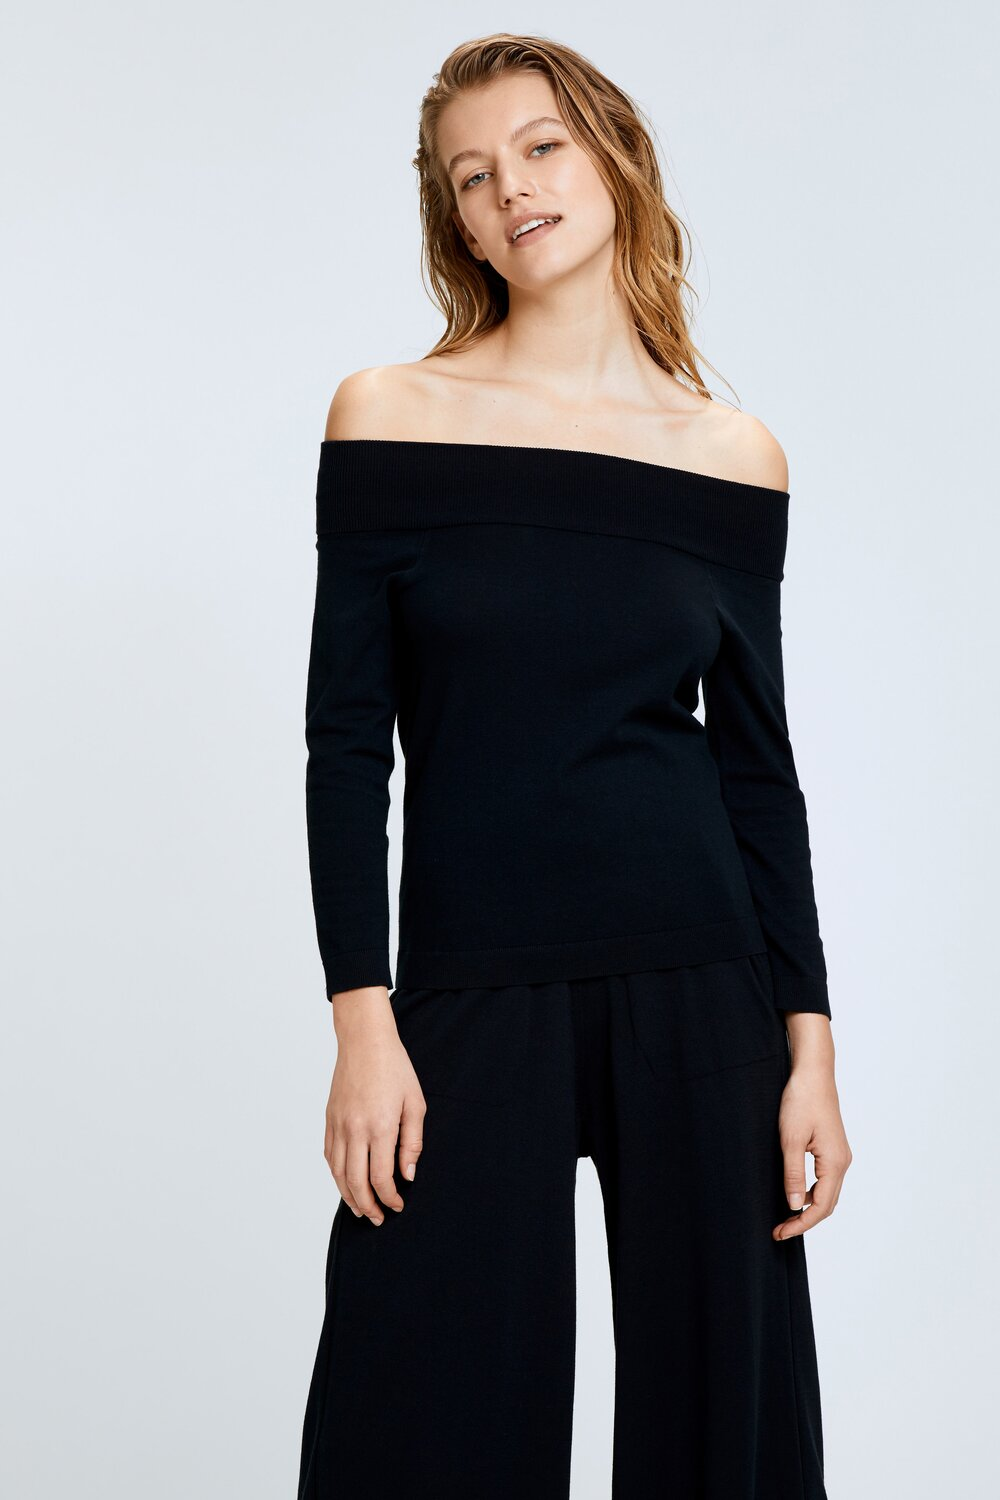 Dorothee Schumacher Black Easy Comfort Off Shoulder Knit-bowns-cambridge